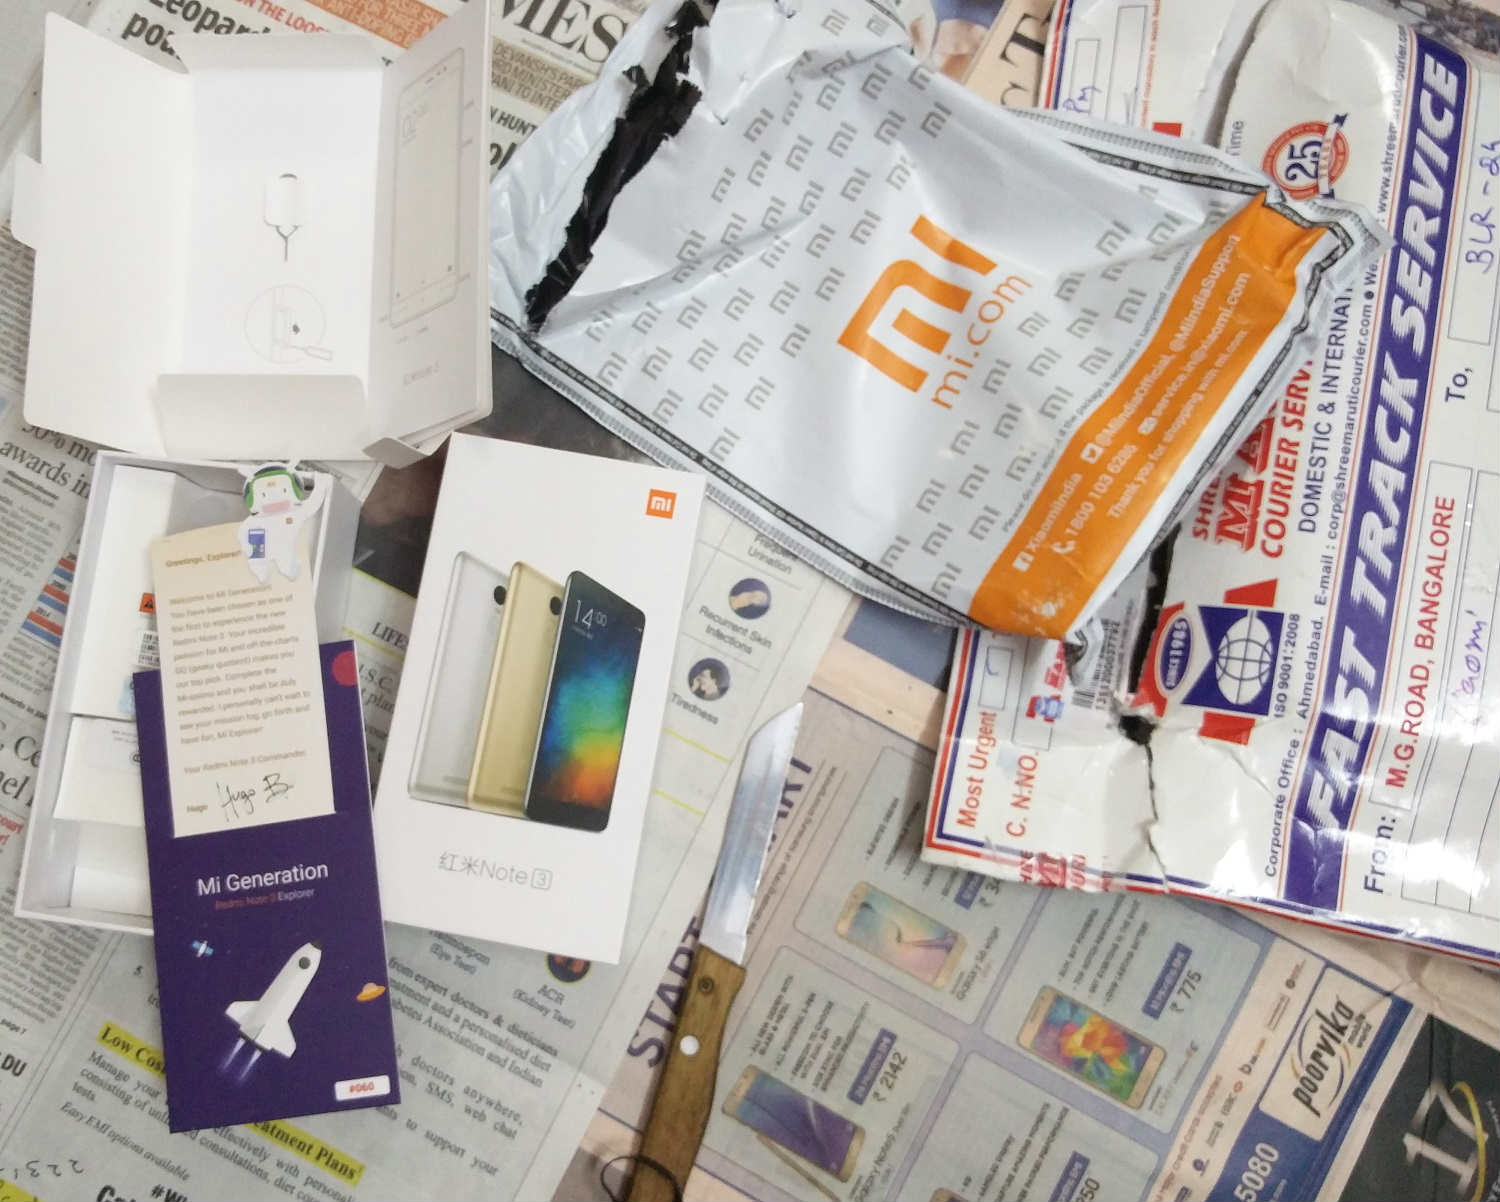 Unboxing & Hands on Xiaomi Redmi Note 3 India   MiExplorer India - techinfoBiT